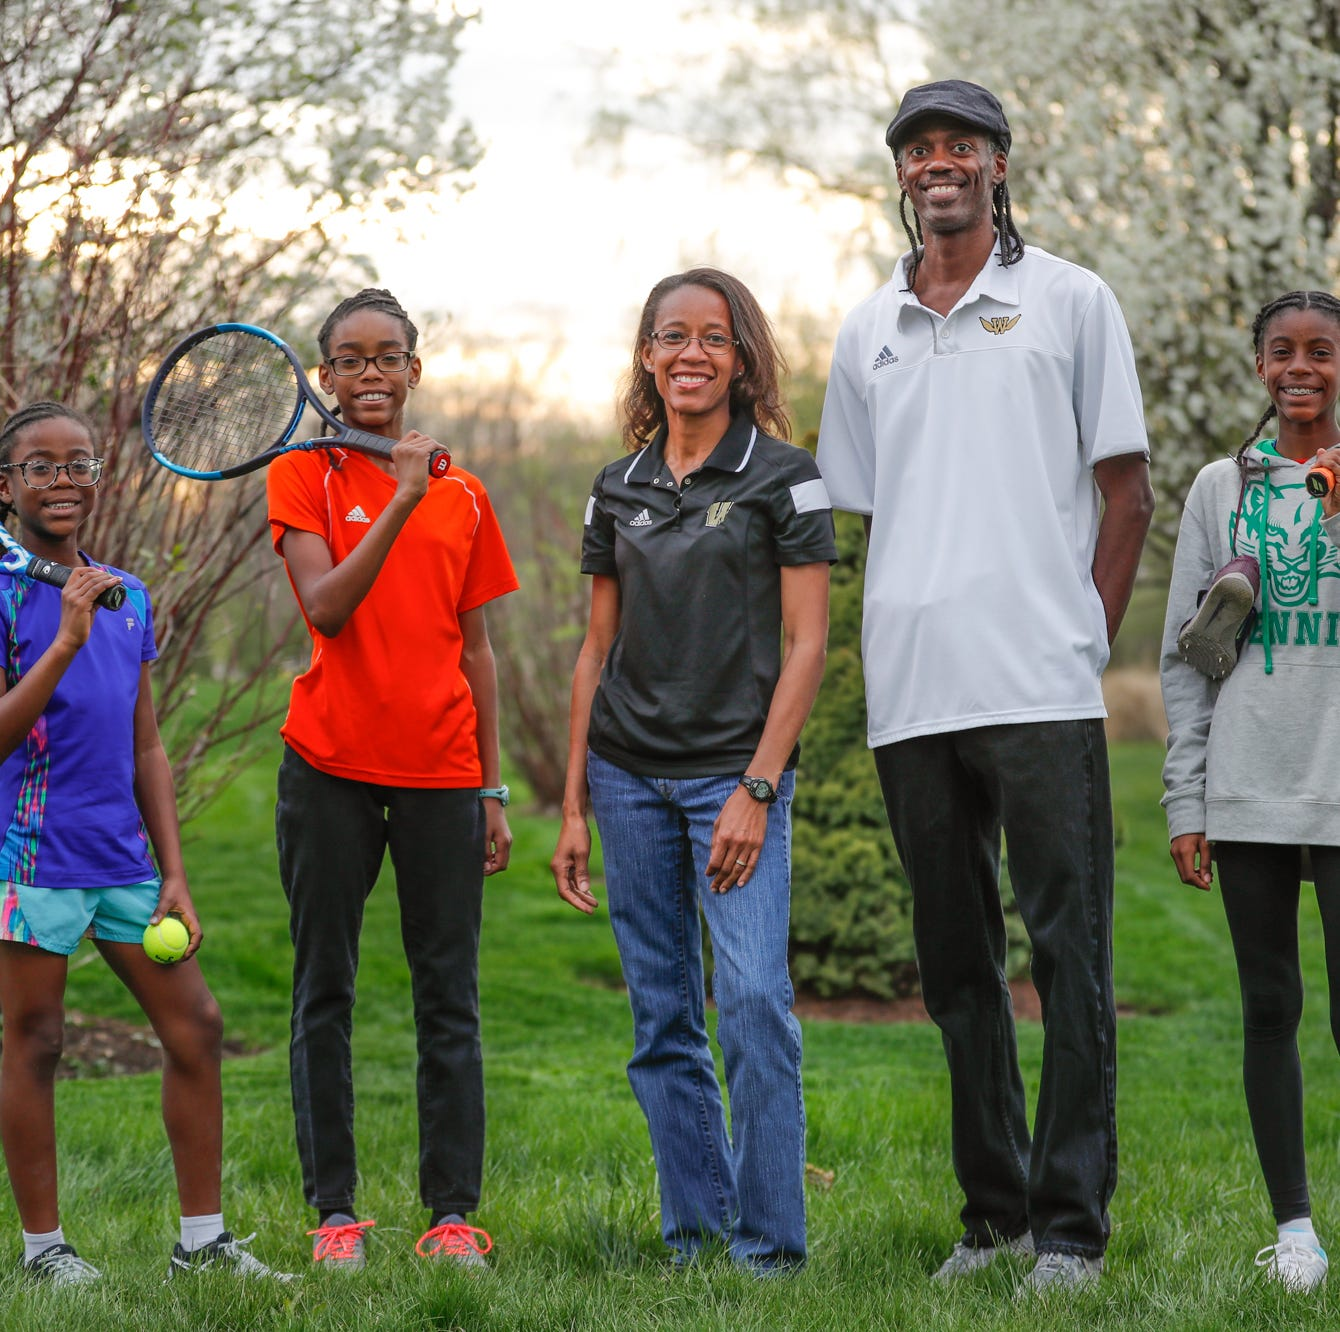 The Smith family, left to right, Kira 9, Samaya, 11, Le'gretta, Steve, and Laila 13, at their Indianapolis home on Wednesday April 17, 2019. Both parents are former track stars.  Le'gretta is Warren Central High School Girls Track Coach. Steve Smith who belongs to the Indiana State and Indiana Track halls of fame.